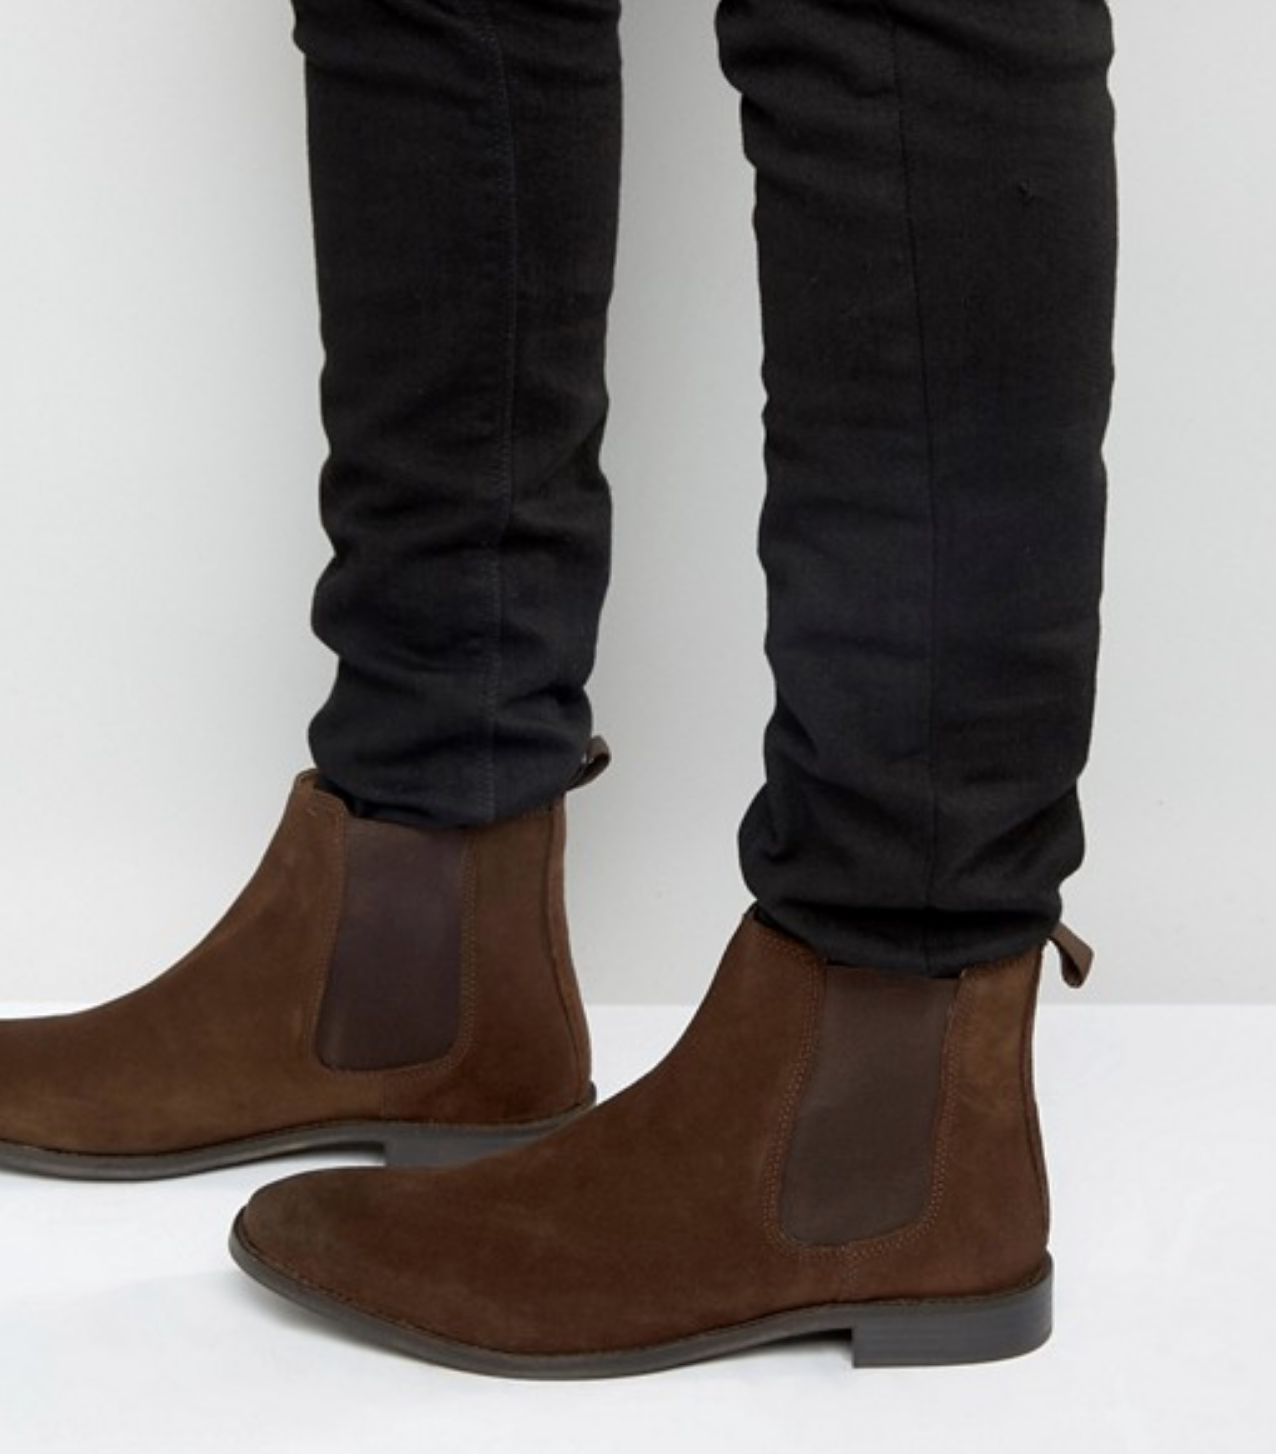 Mens Brown Genuine Suede Leather Dress High Top Chelsea Boots w  Pull Tab